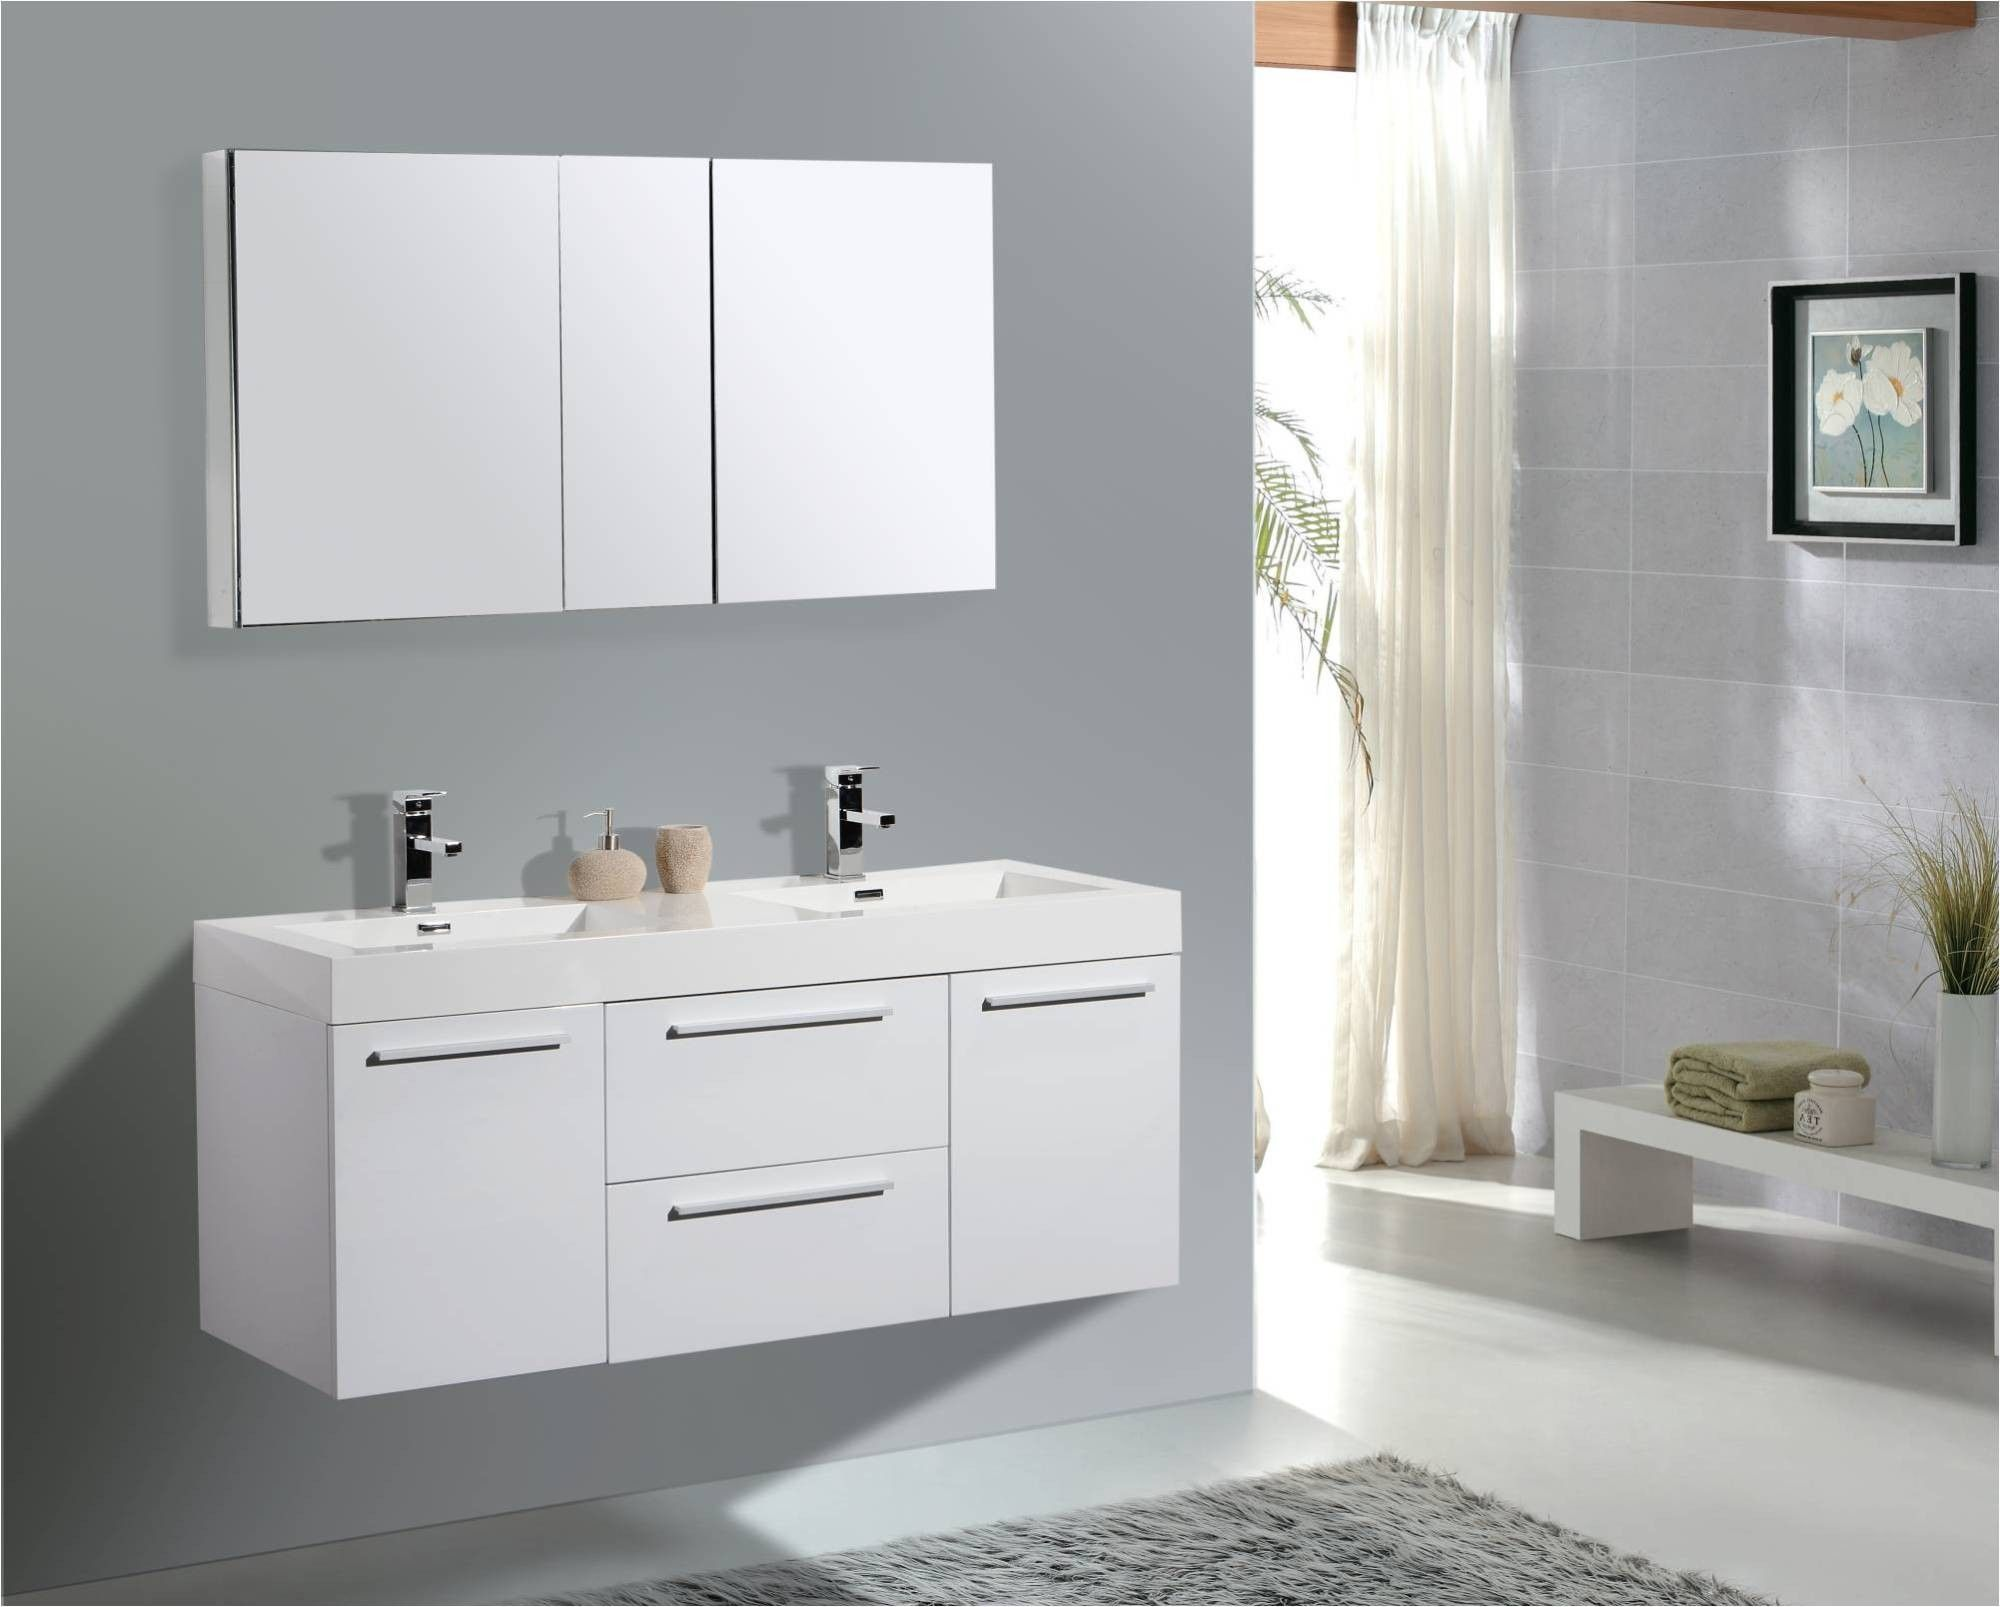 AQUA DECOR Austin Inch Modern Double Sink Bathroom Vanity W - Bathroom vanities austin